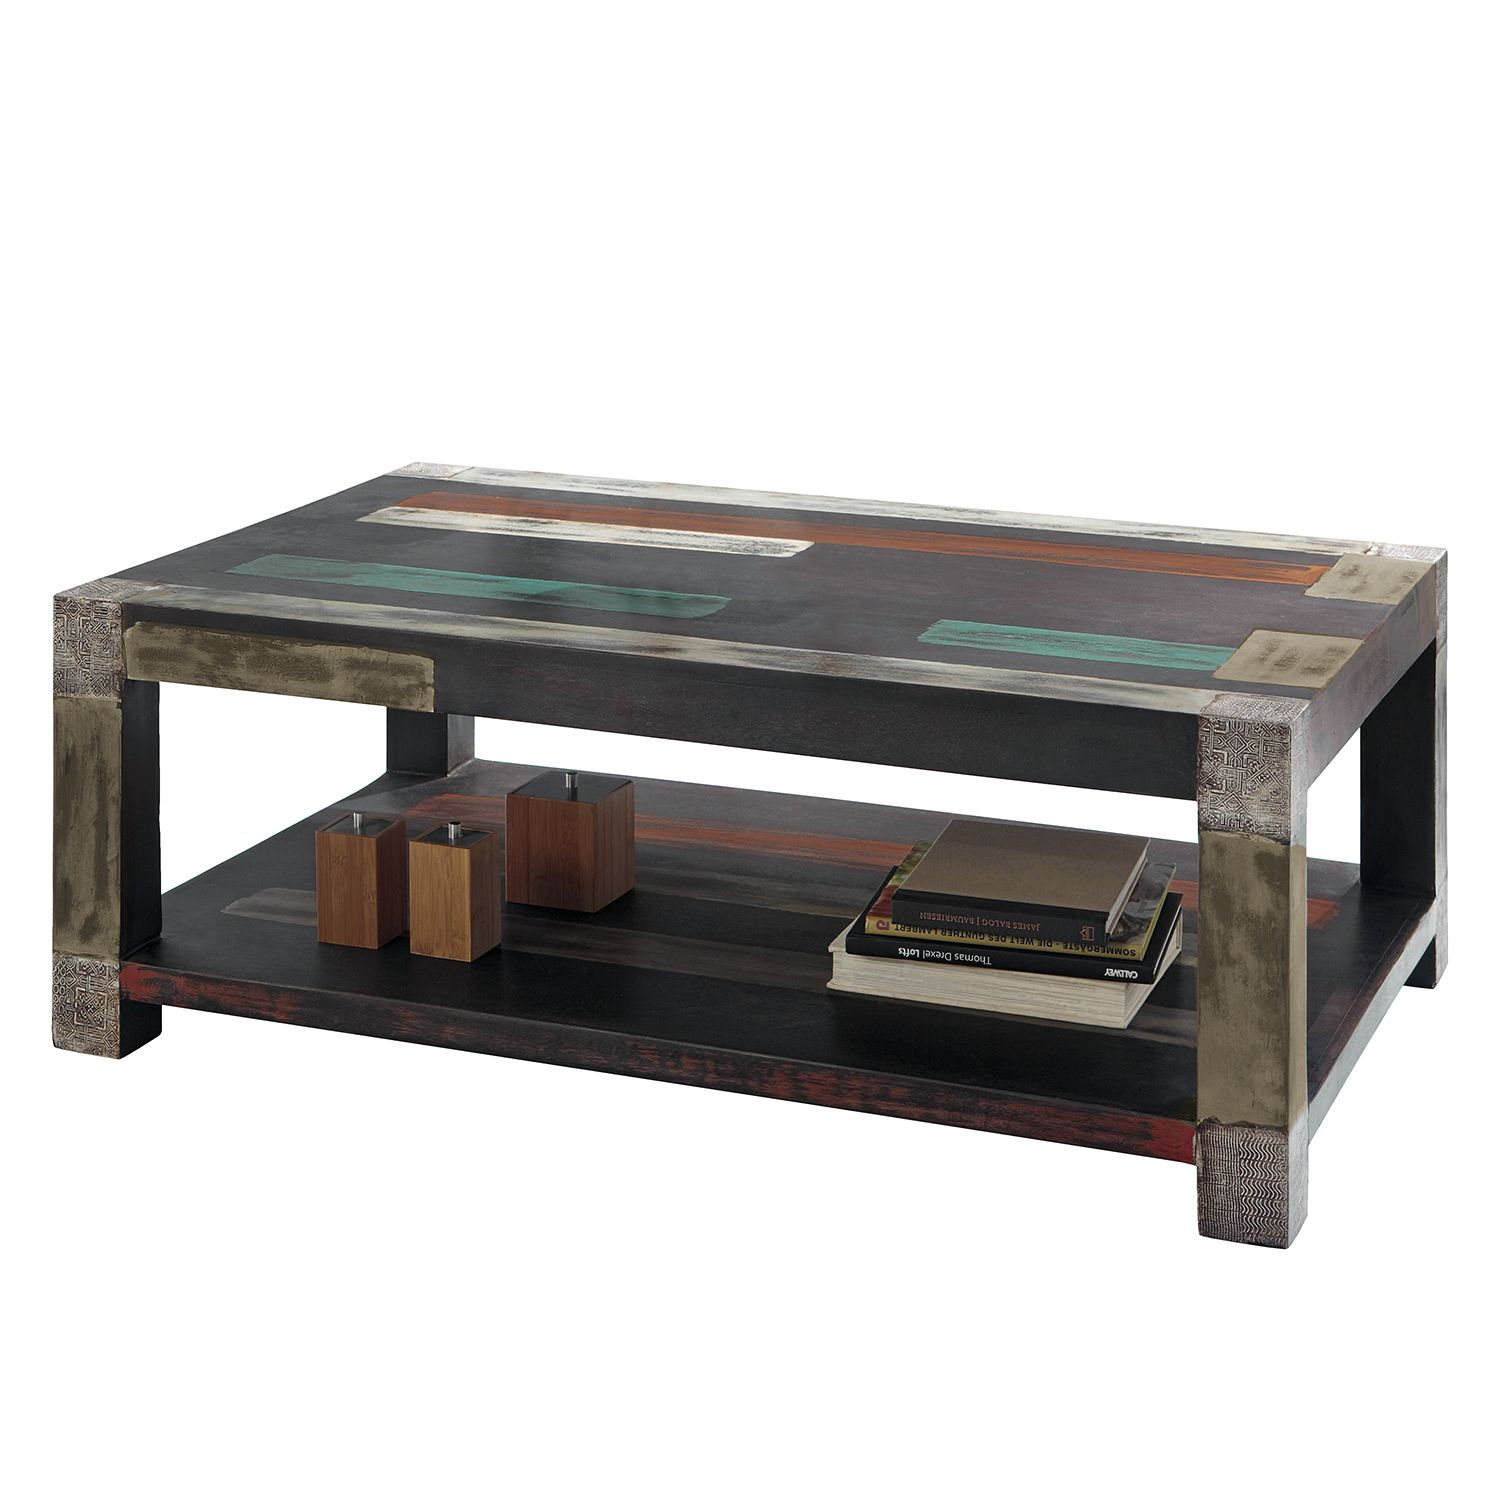 Table basse Goa I